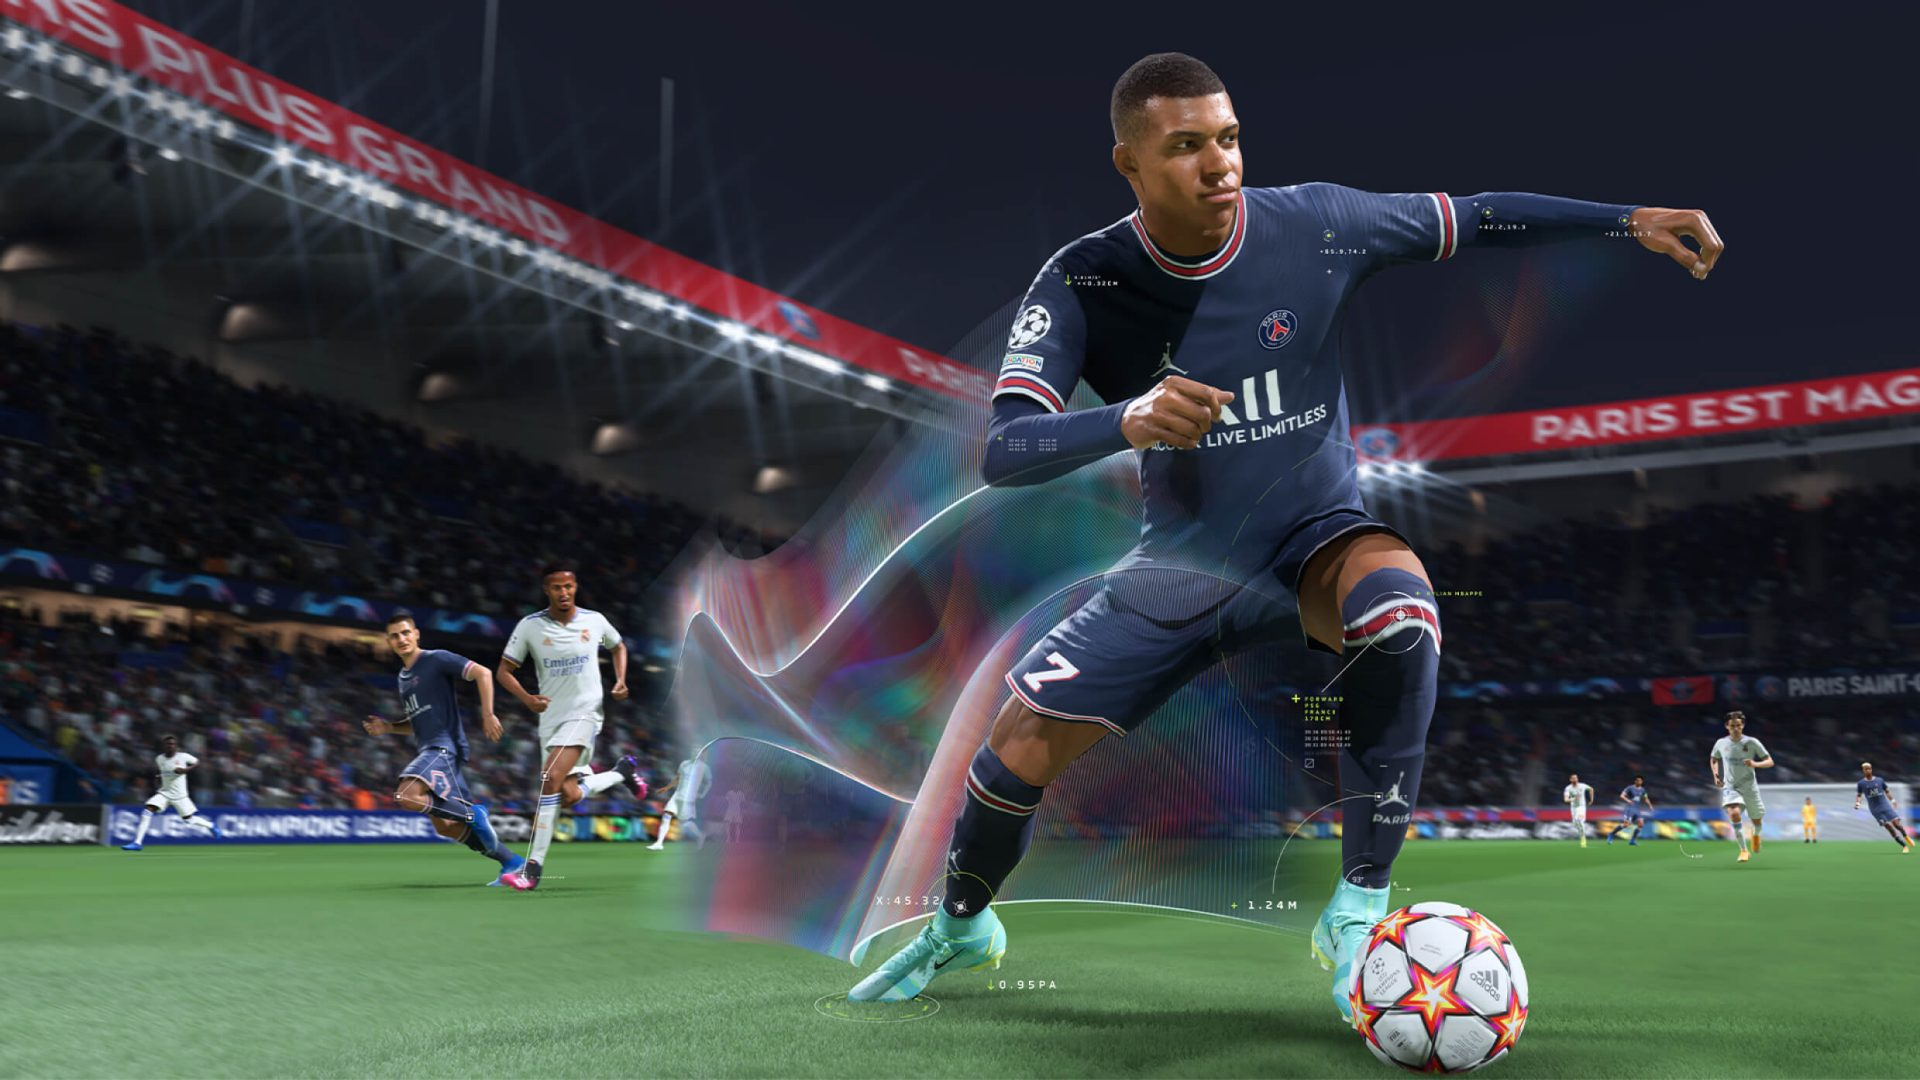 FIFA 22: What is the 10-hour trial period release date time?